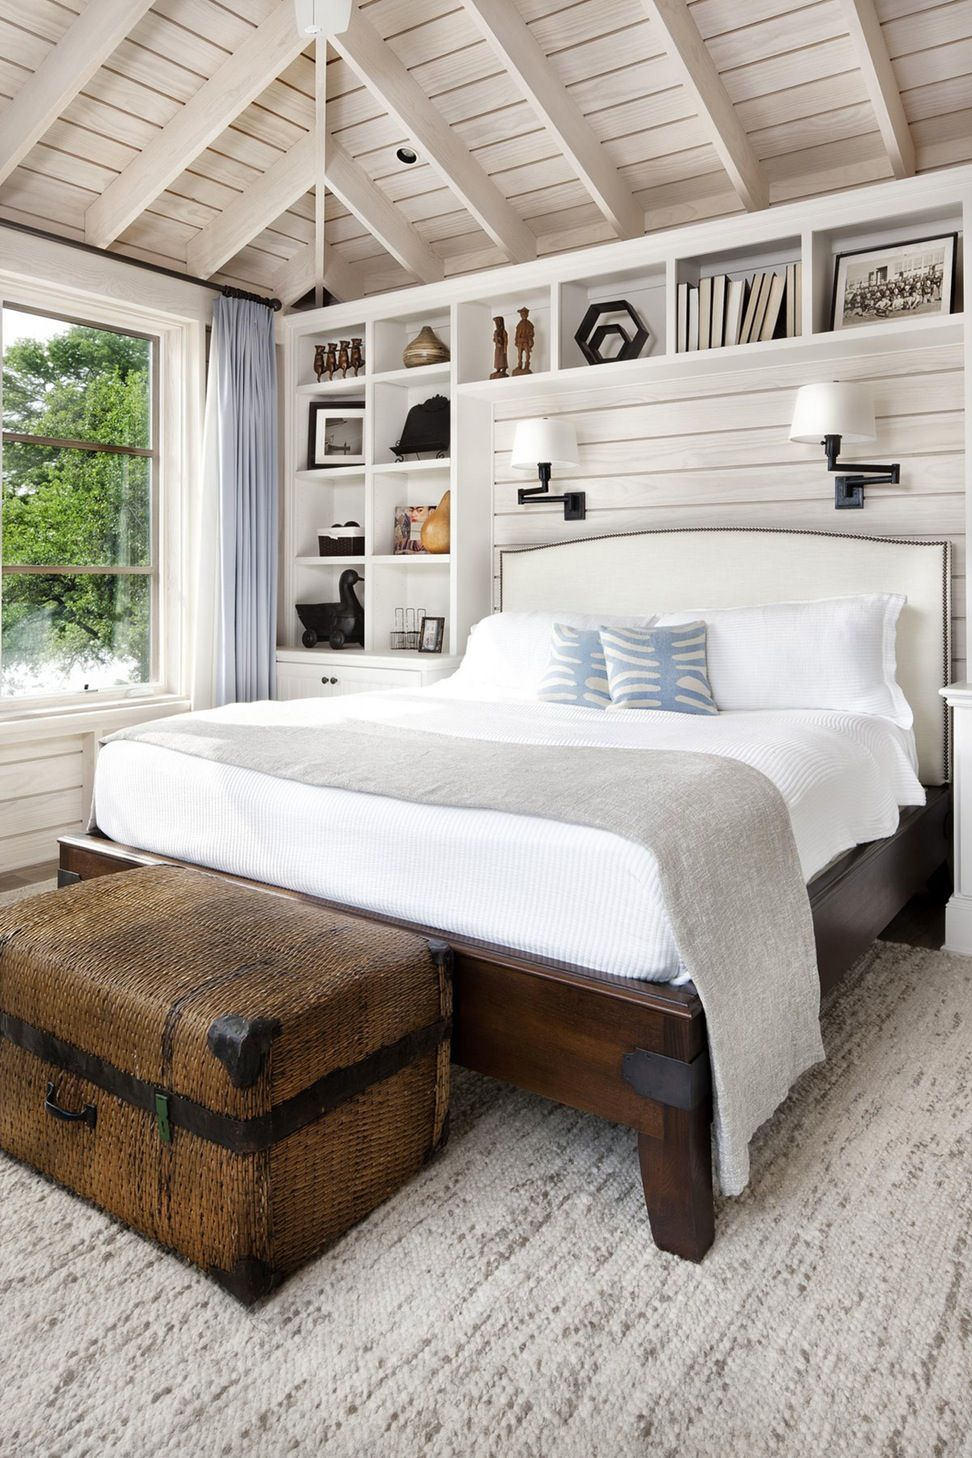 Schlafzimmer Ideen Landhausstil Pin On Master Bedroom Blog